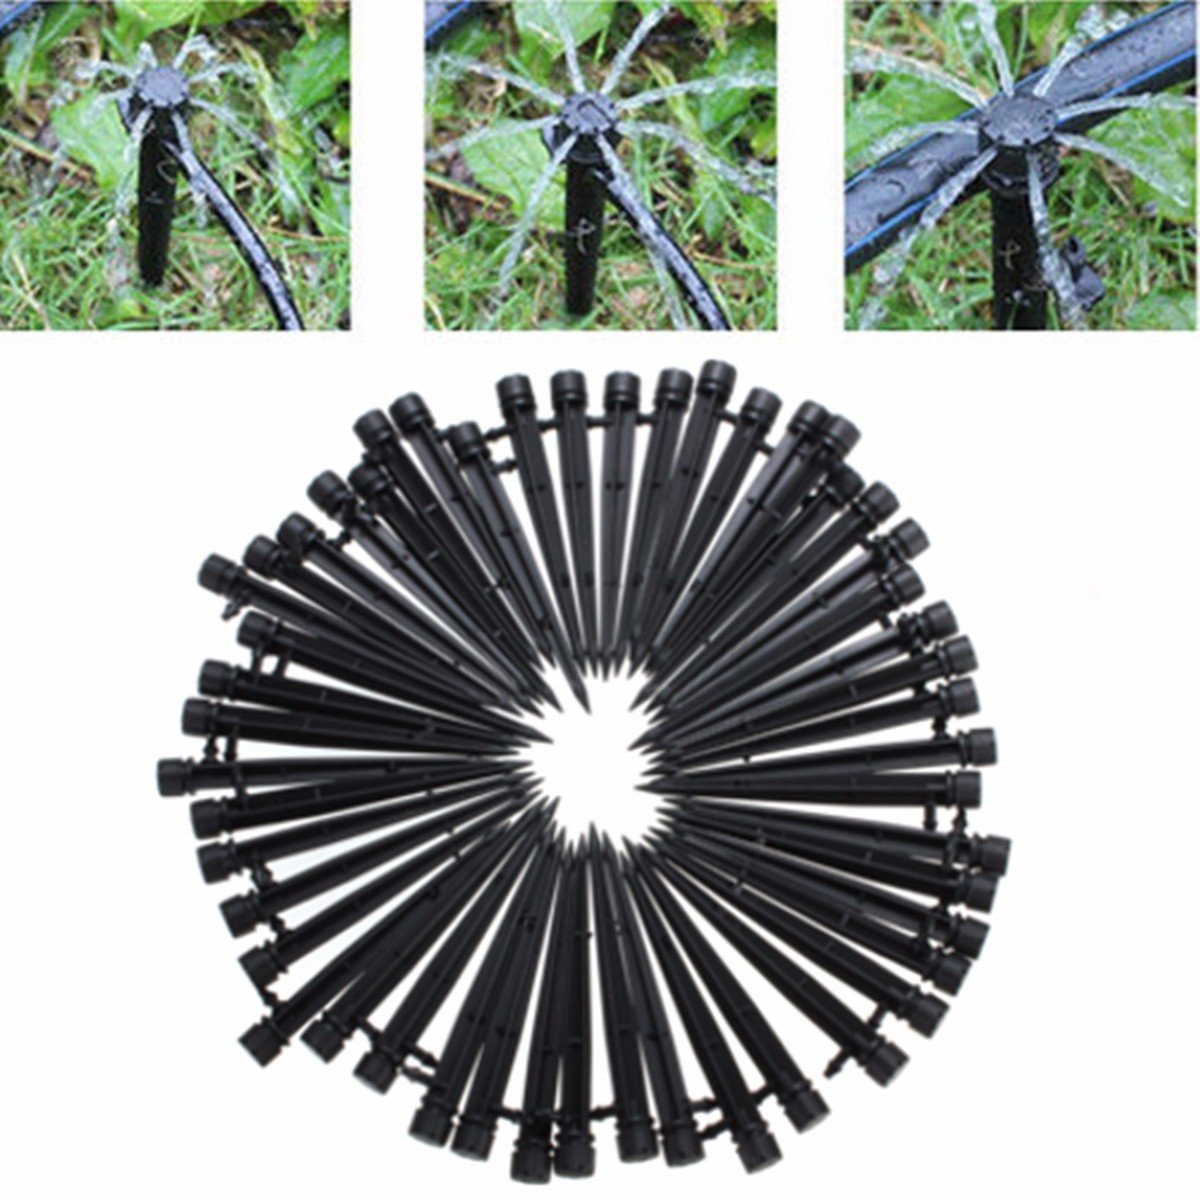 king do way 50Pcs Irrigation Drip Emitters for 4mm//7mm Tubing Adjustable 360 Degree Water Flow Drip Irrigation System for Plant Garden Watering 5 Inch